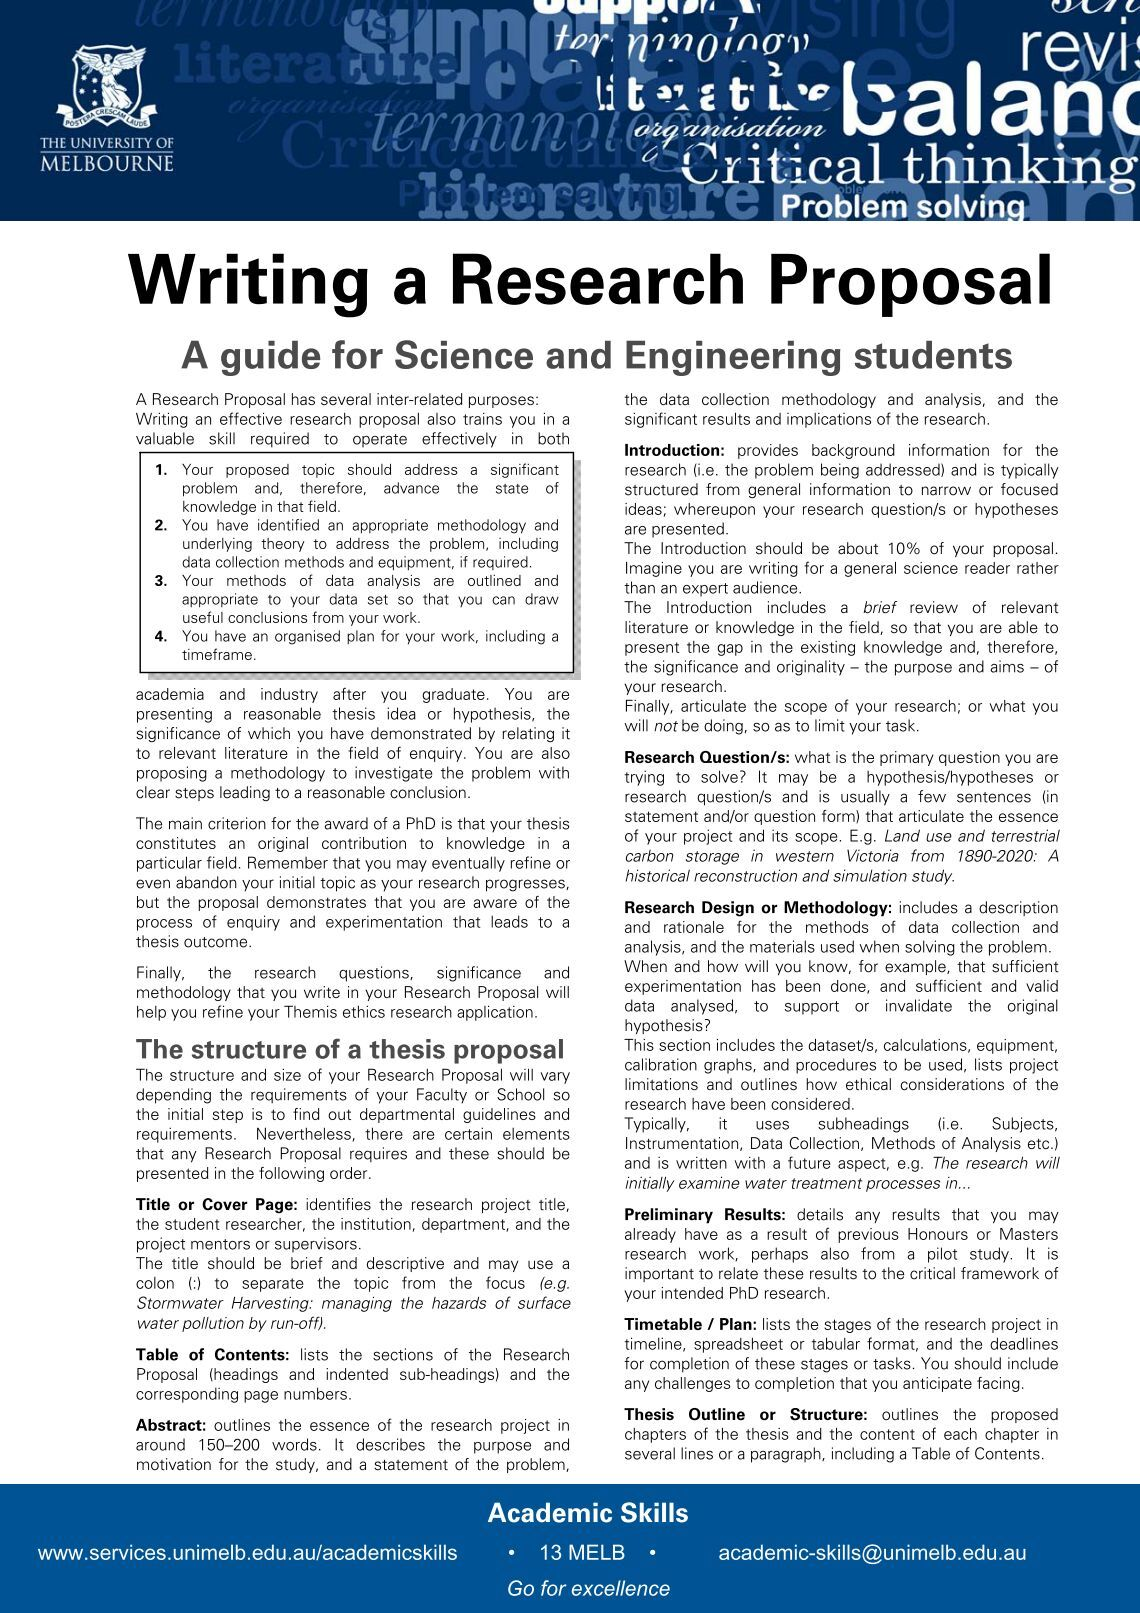 Creative writing phd research proposal